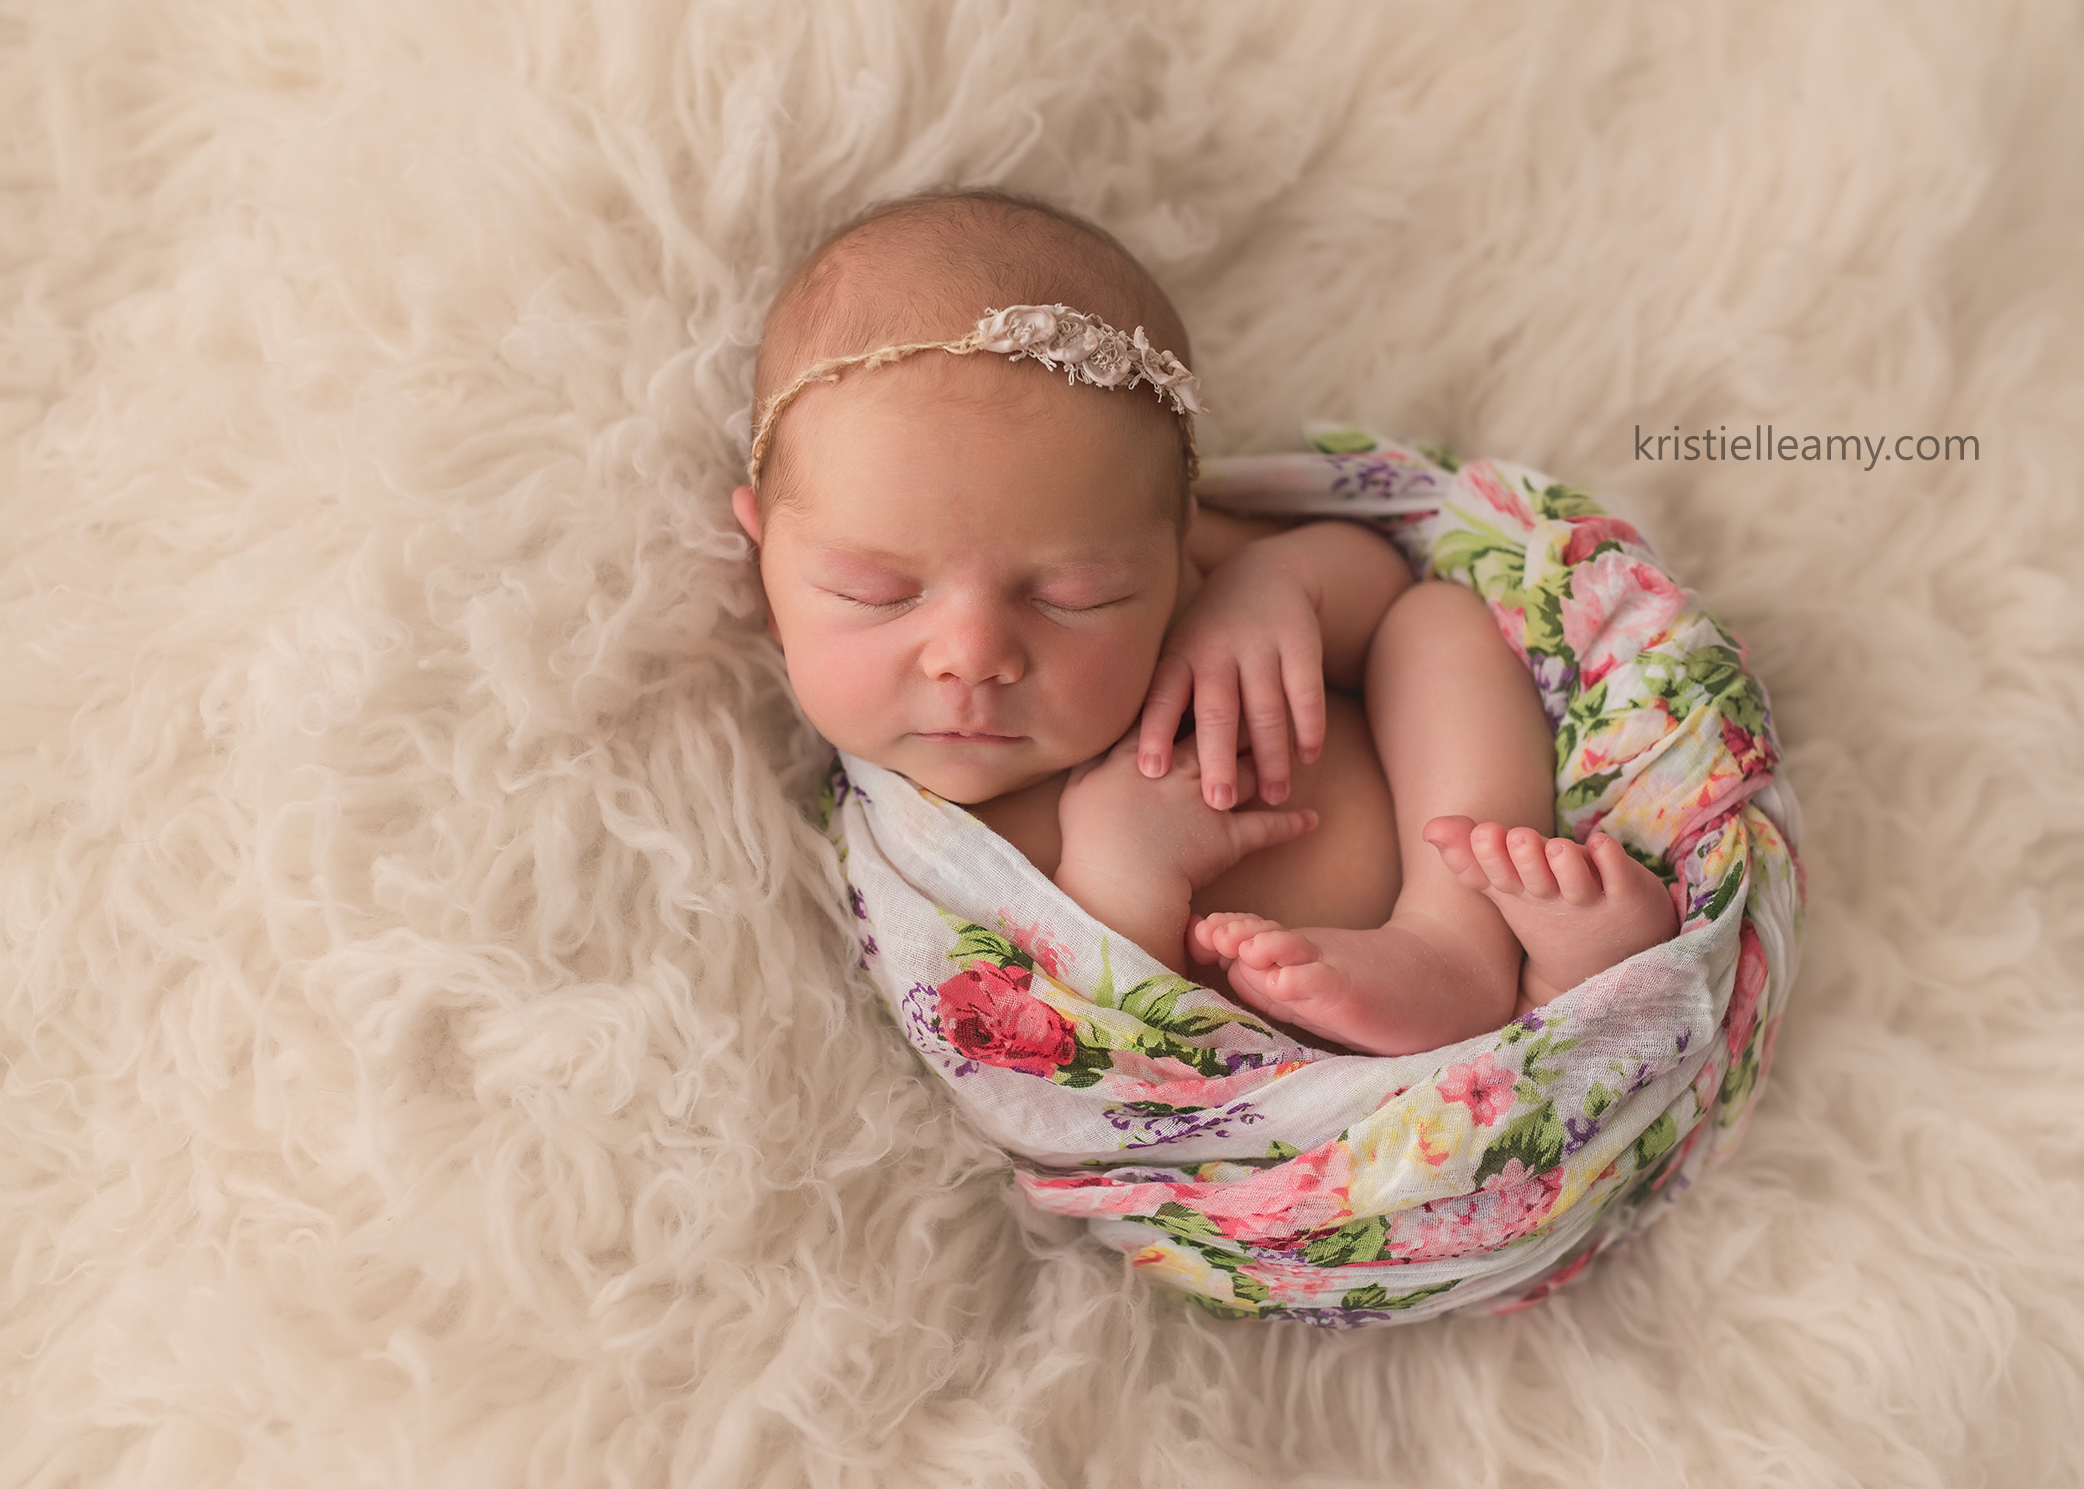 15 day old adeline echuca newborn photography